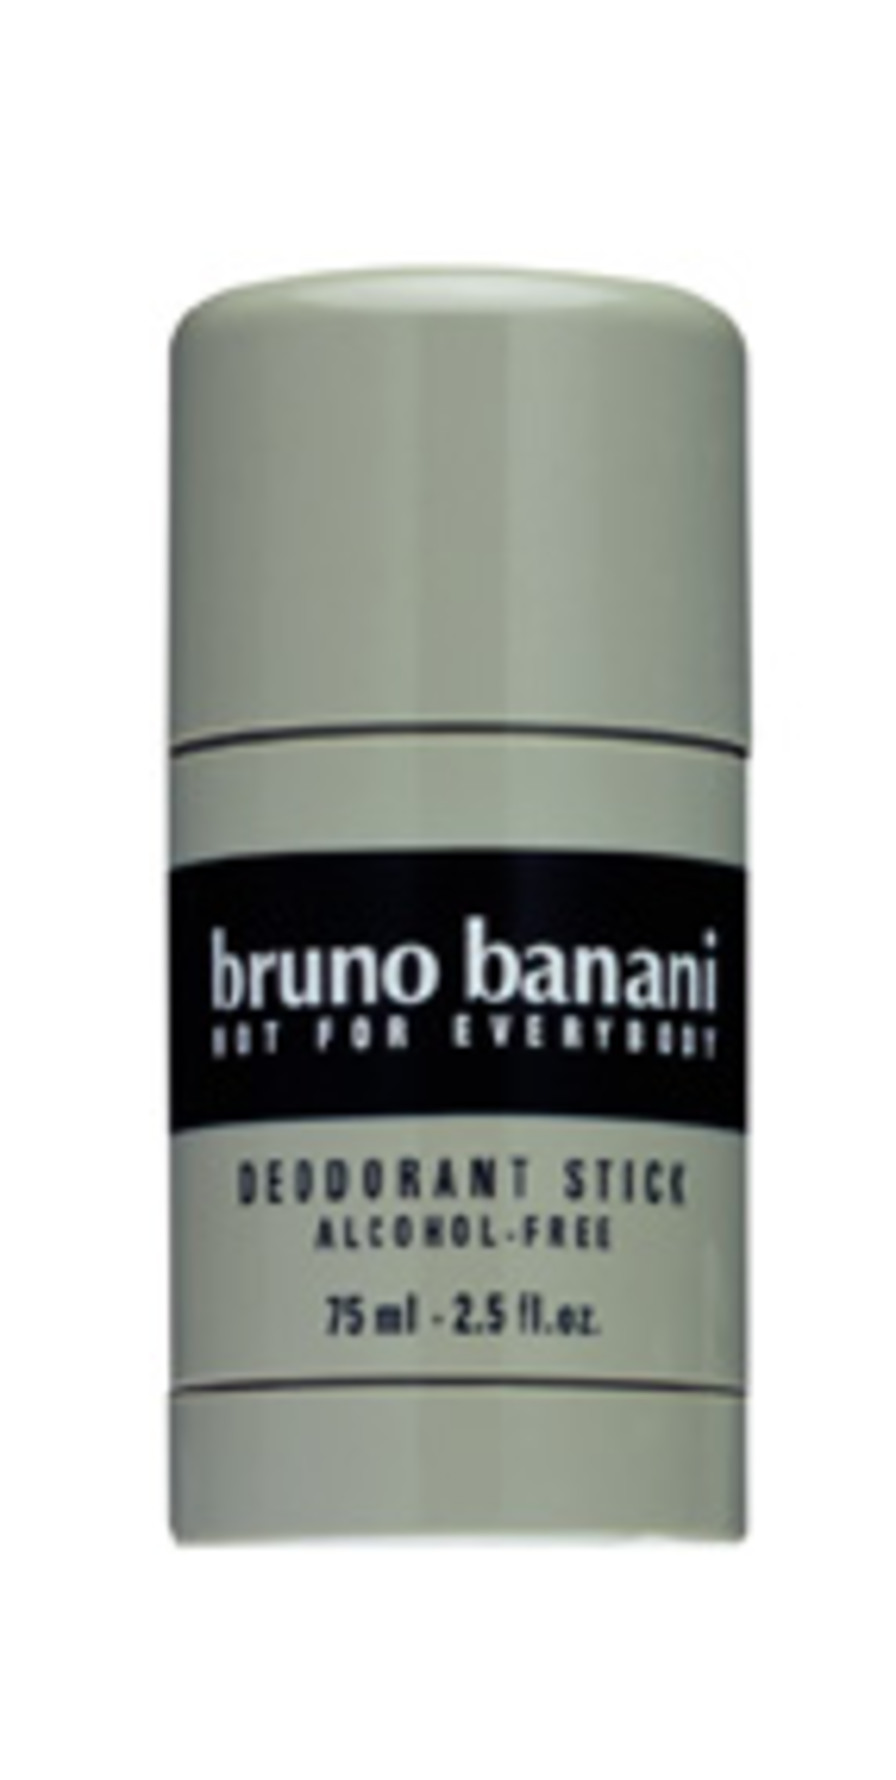 bruno banani man deo stick 75 ml. Black Bedroom Furniture Sets. Home Design Ideas